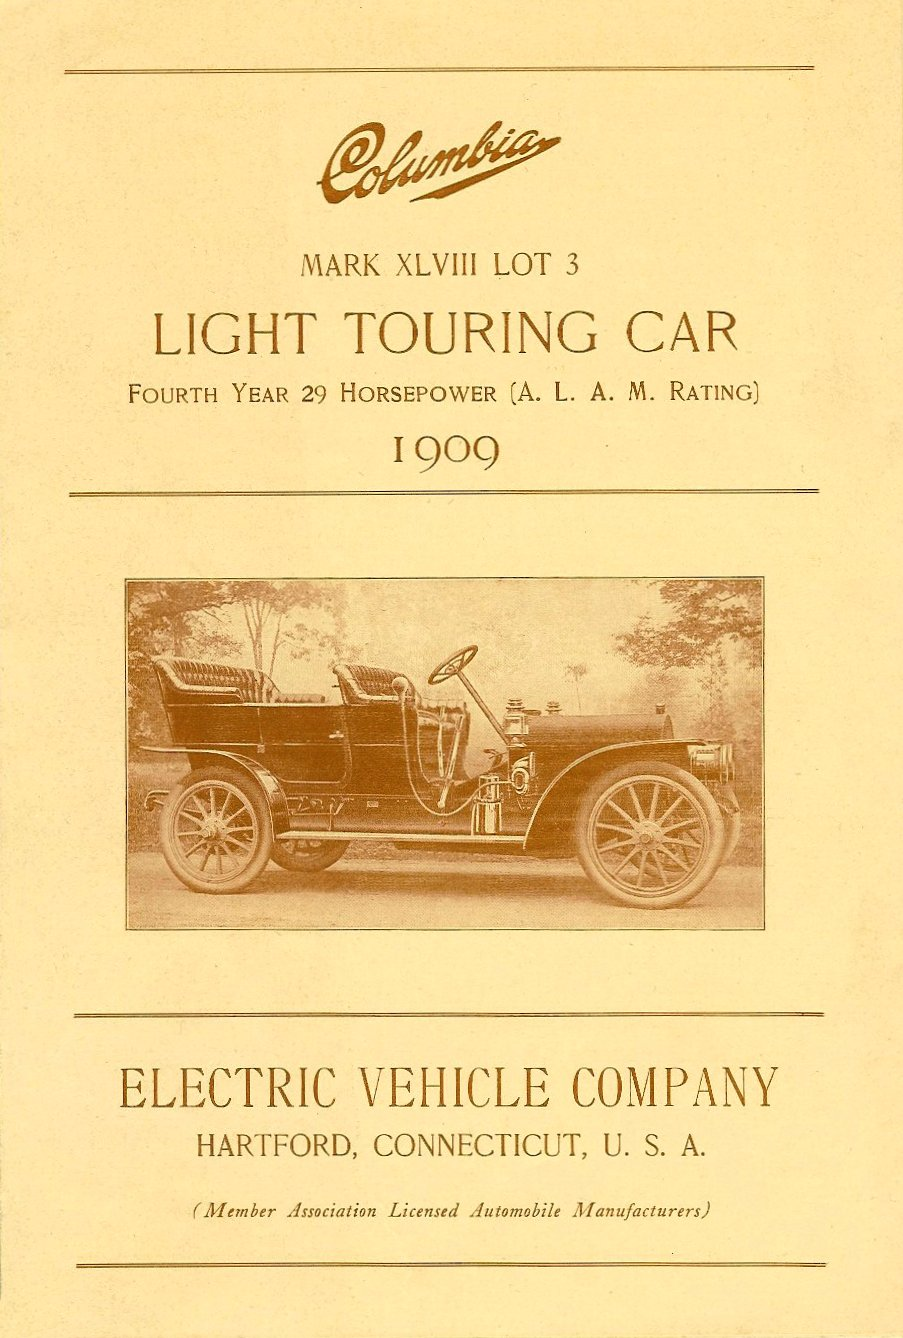 1909 COLUMBIA Columbia Light Touring Car Mark XLVIII Lot 3 Electric Vehicle Company Hartford, Connecticut, USA Folded: 6″x9″ Front page